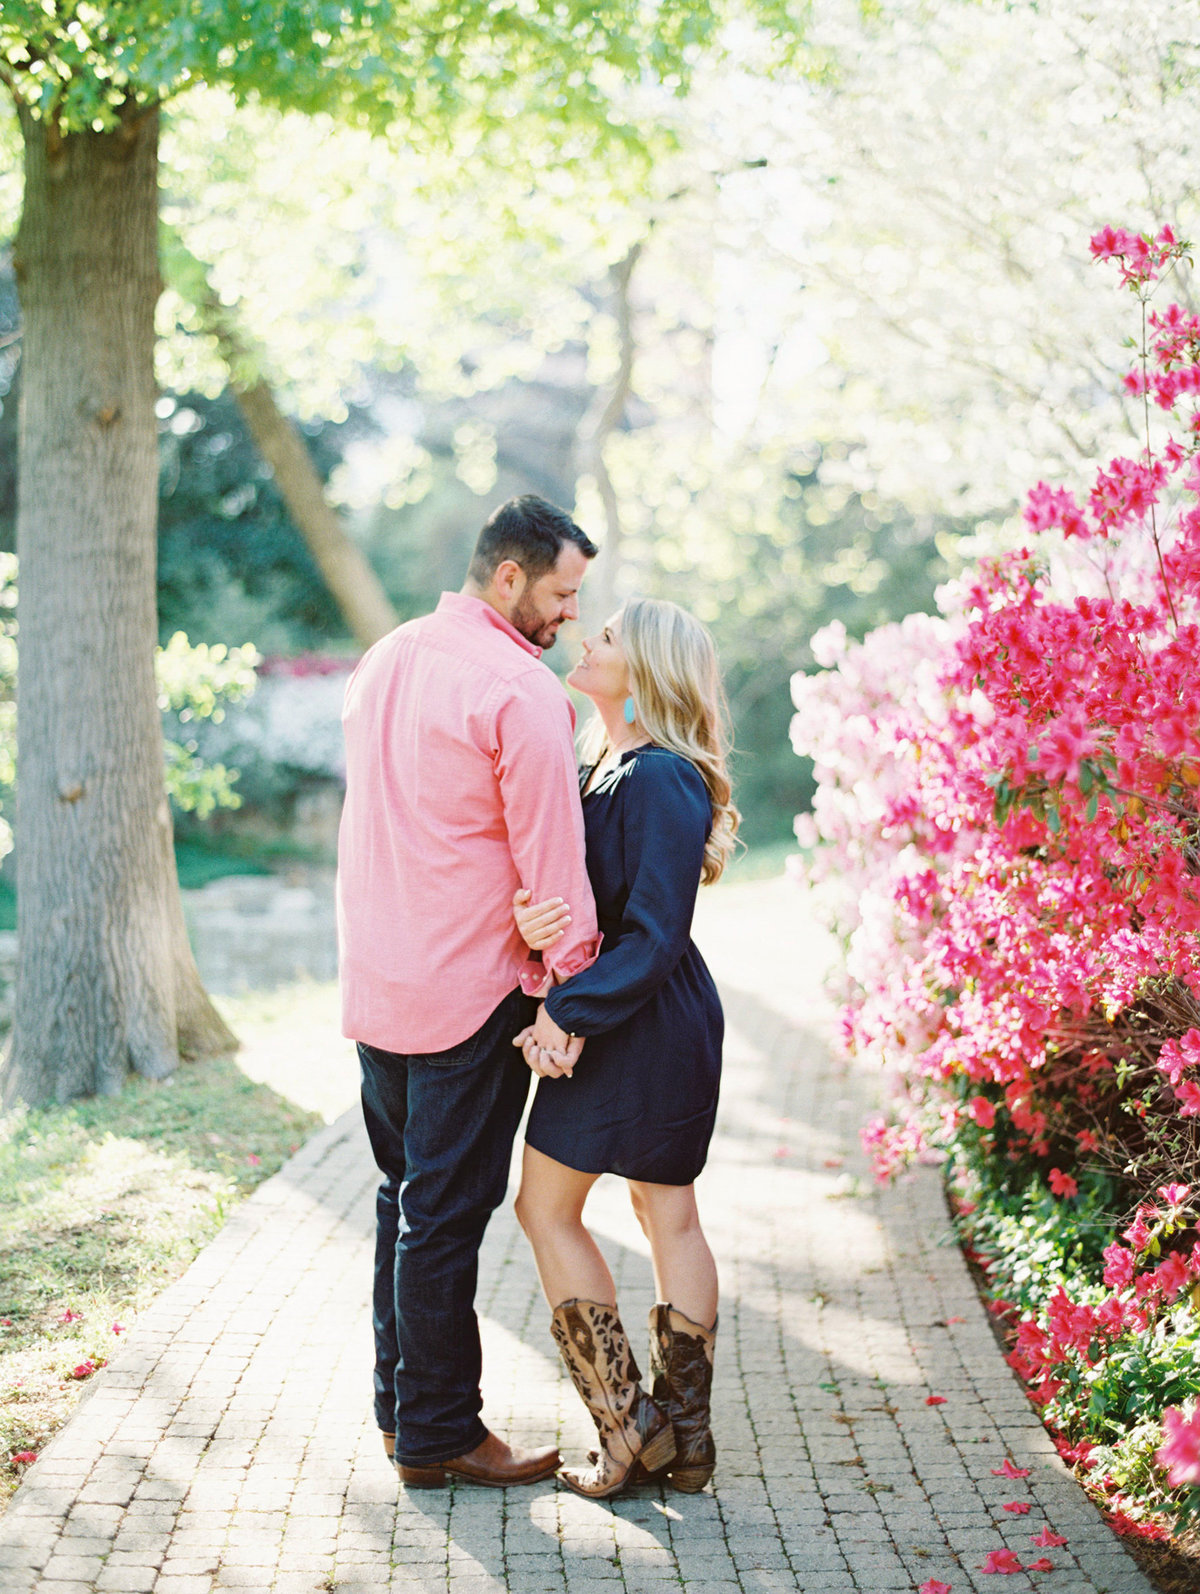 Courtney Hanson Photography - Dallas Spring Engagement Photos-005